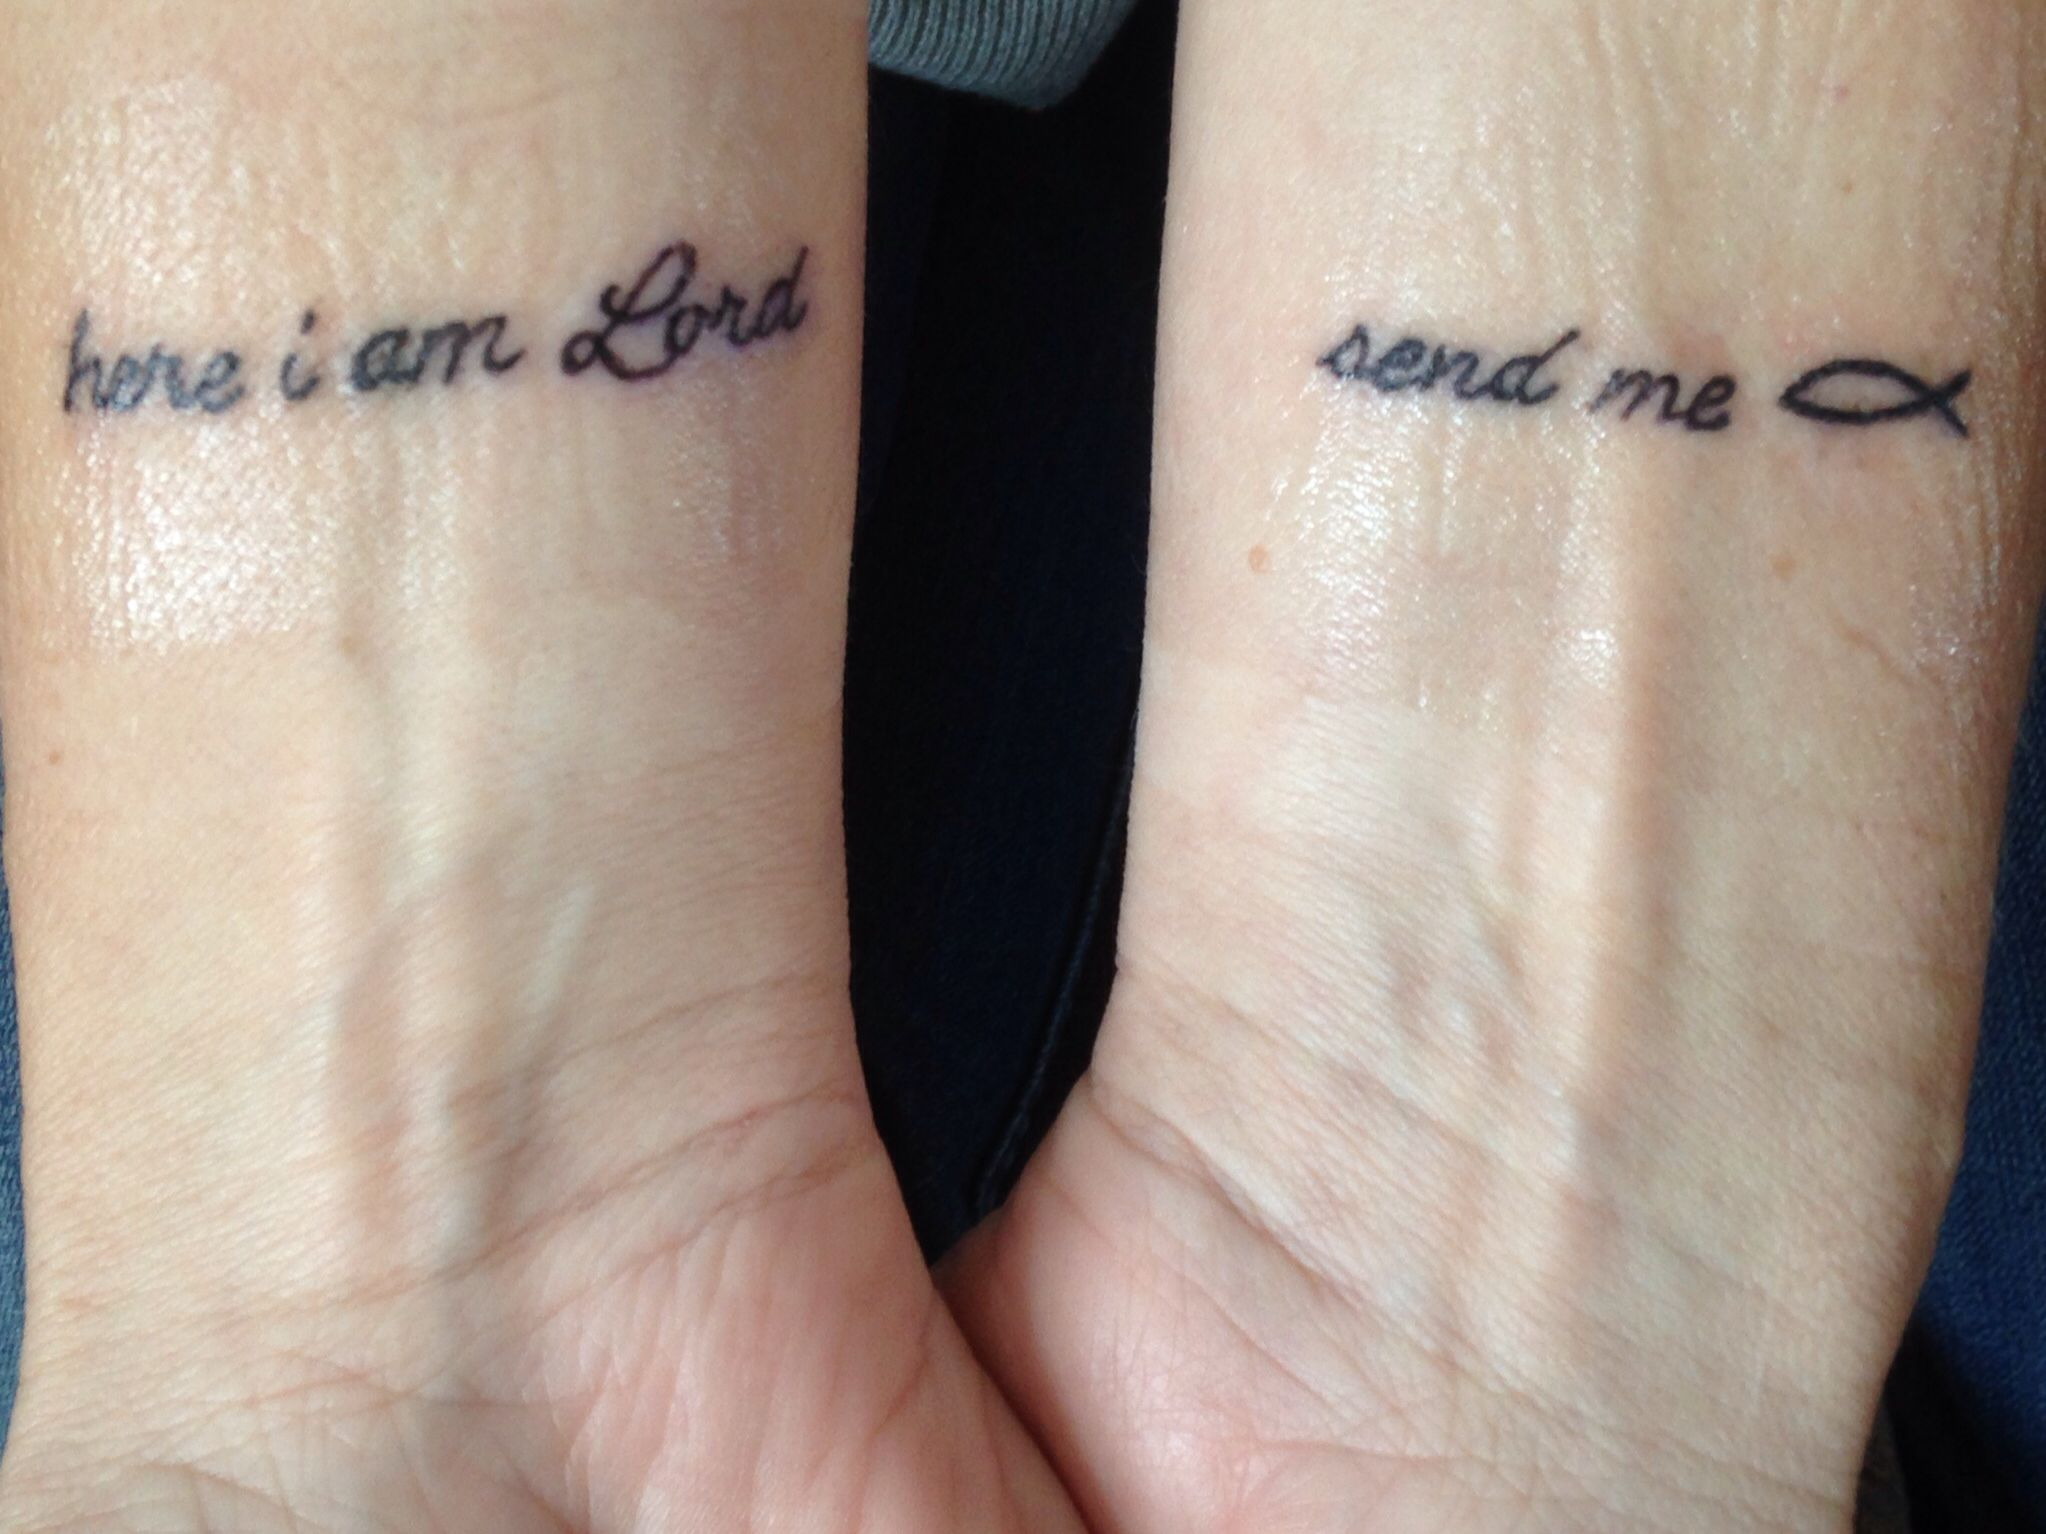 Here I am Lord      Send me Tattoo Isaiah 6:8 | Who I am | Scripture